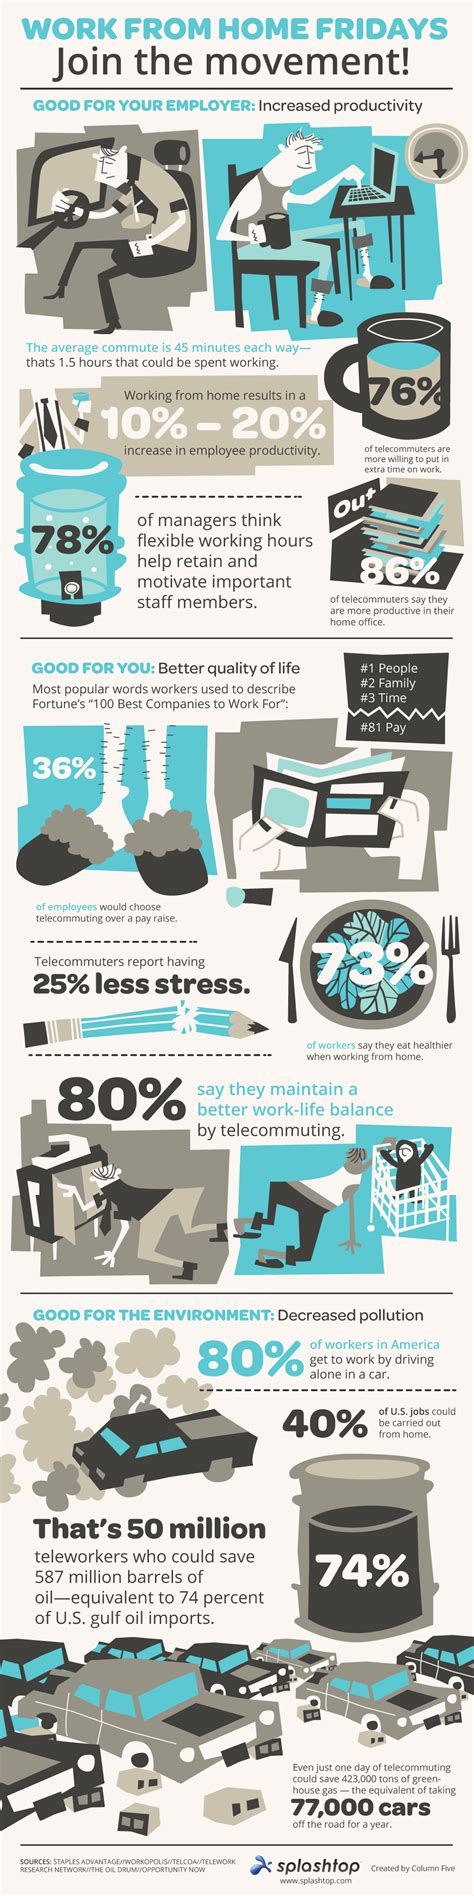 benefits of telecommuting for employers employees and the